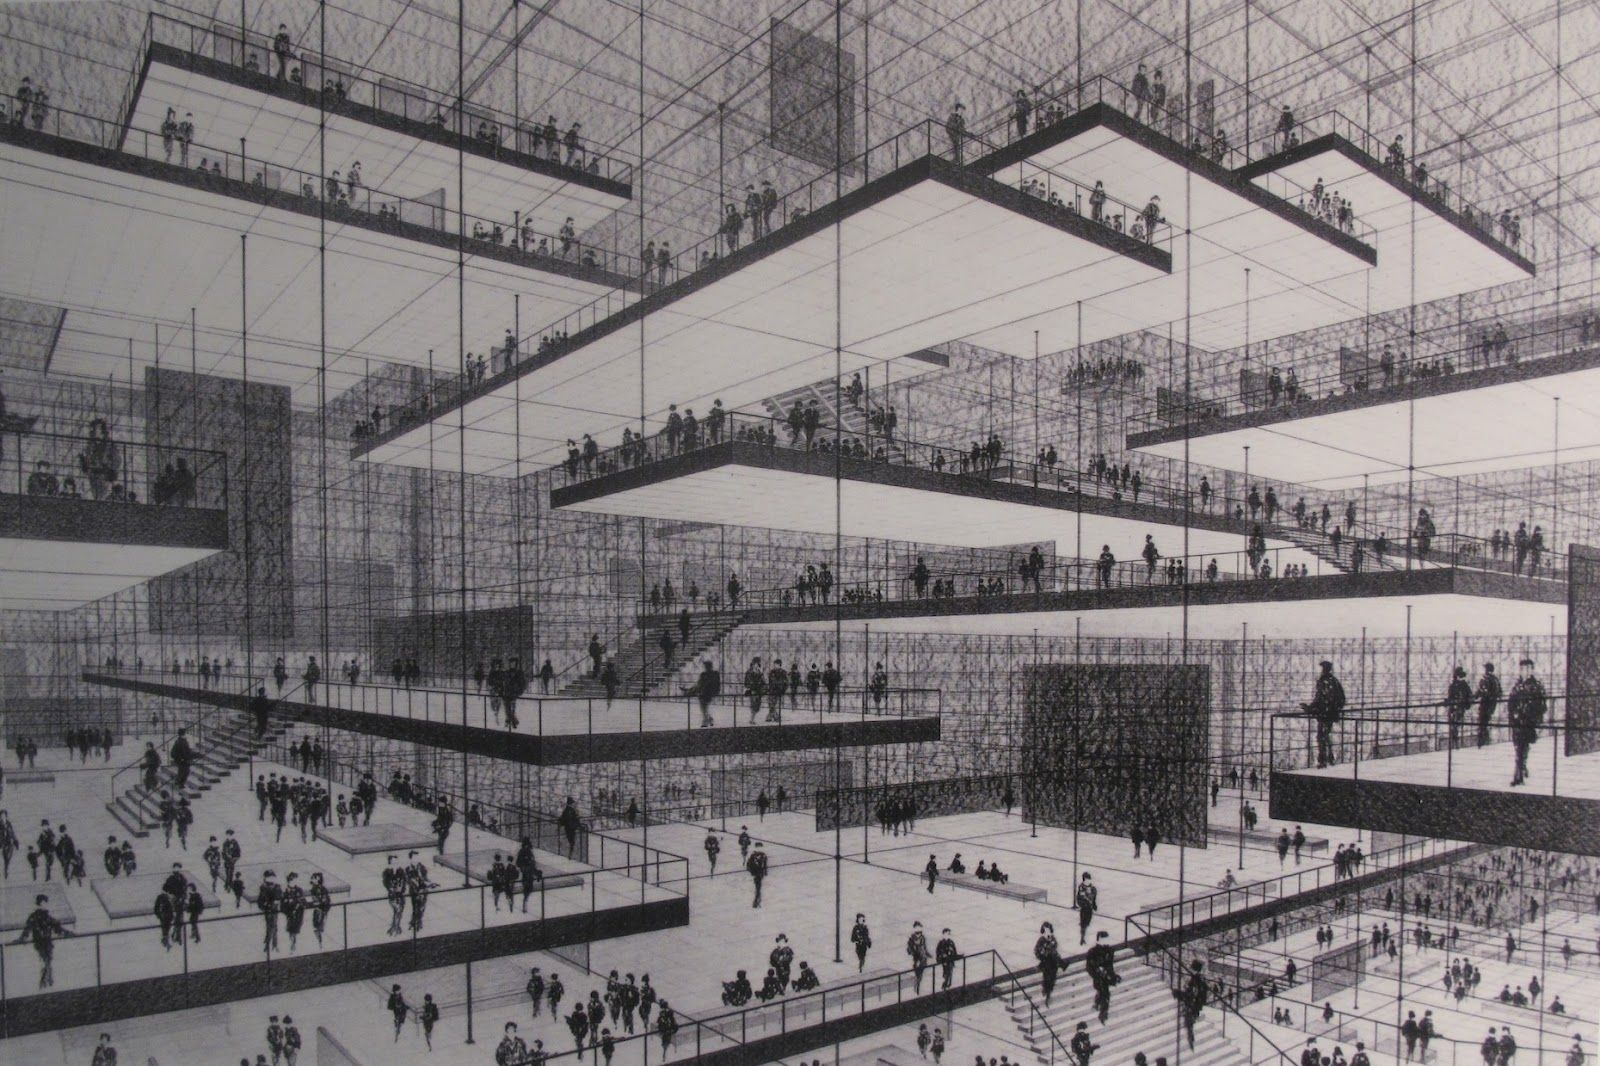 Exhibition Hall D Model : Conrad roland s drawing for an exhibition hall with